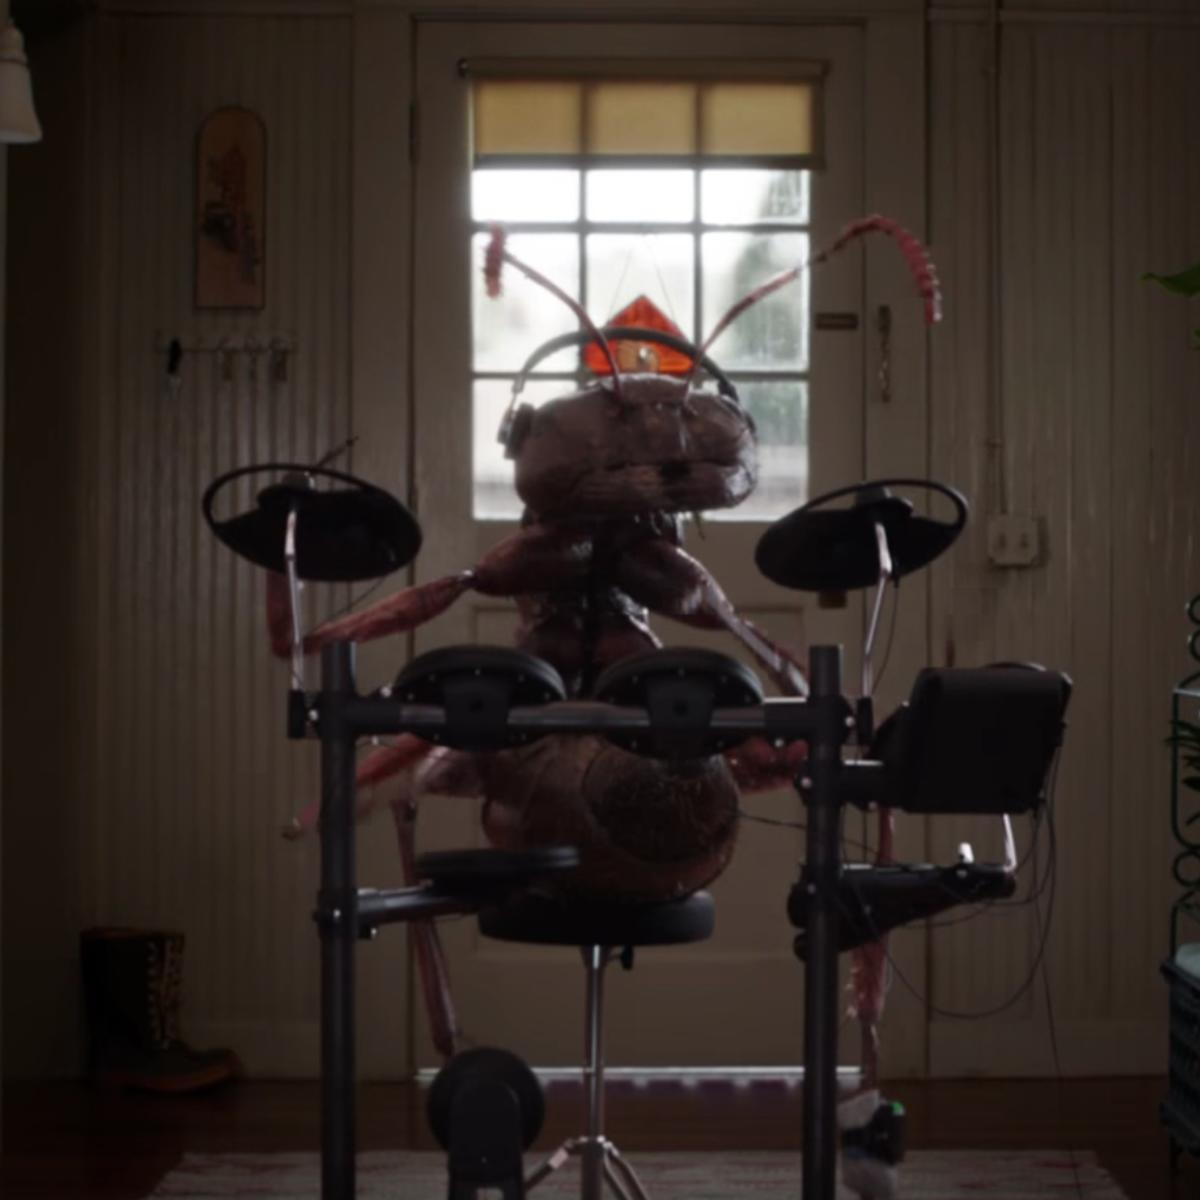 Ant-Man and the Wasp, giant ant playing drums